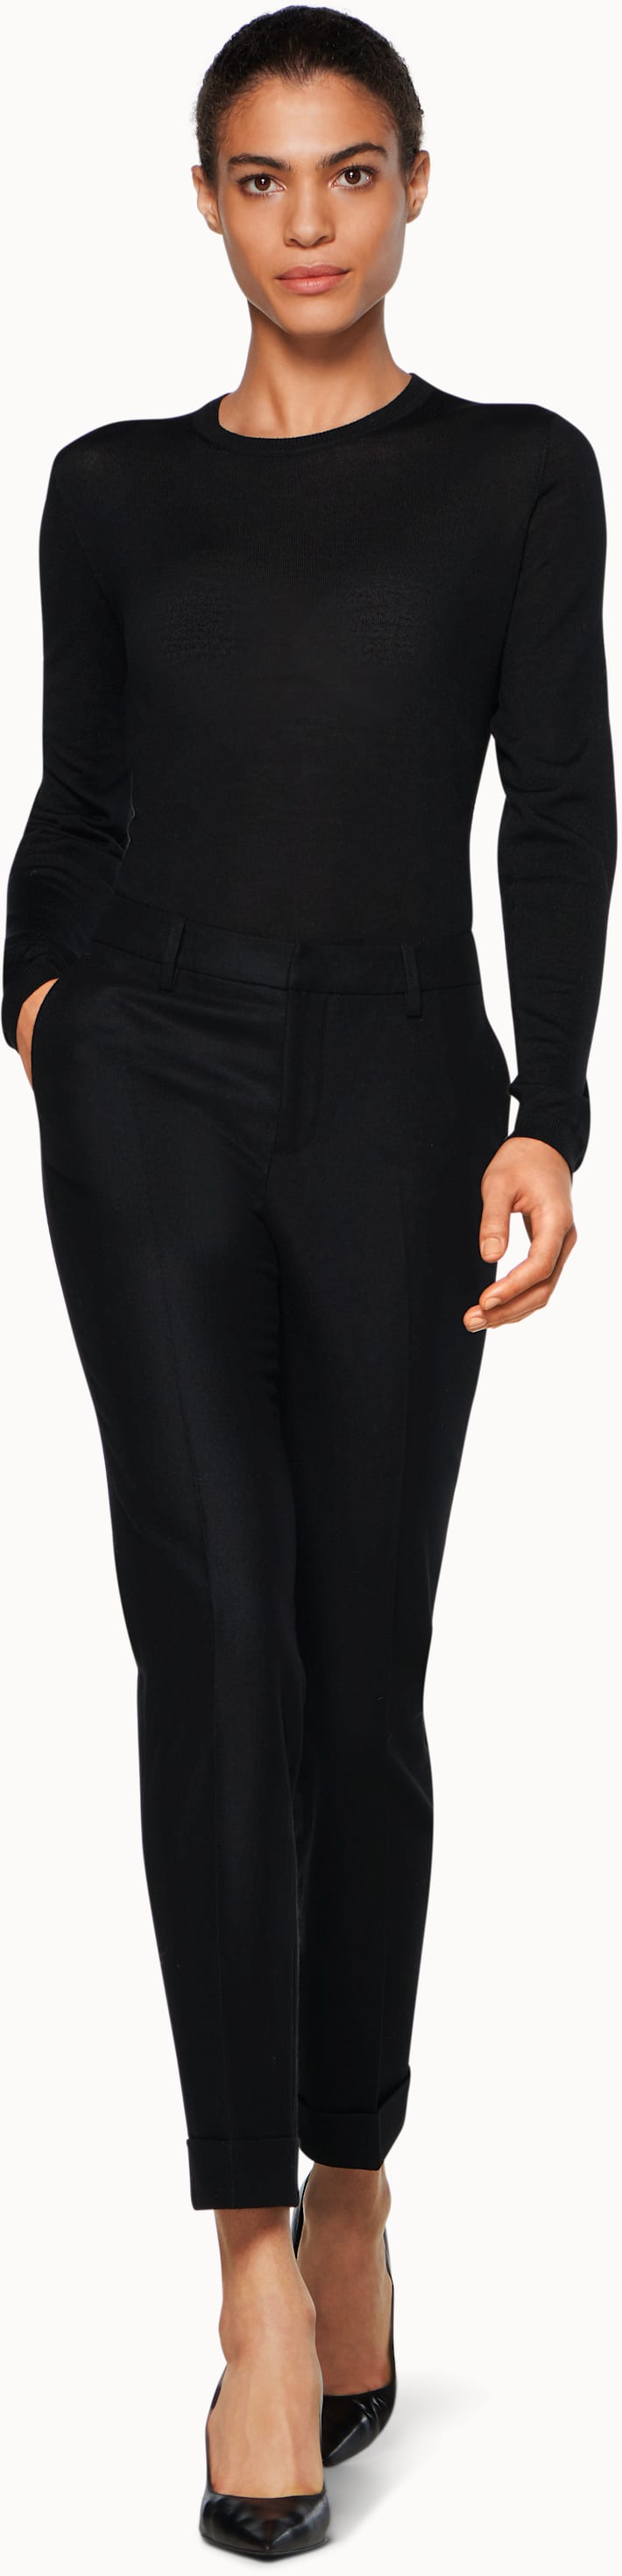 Robin Black  Trousers